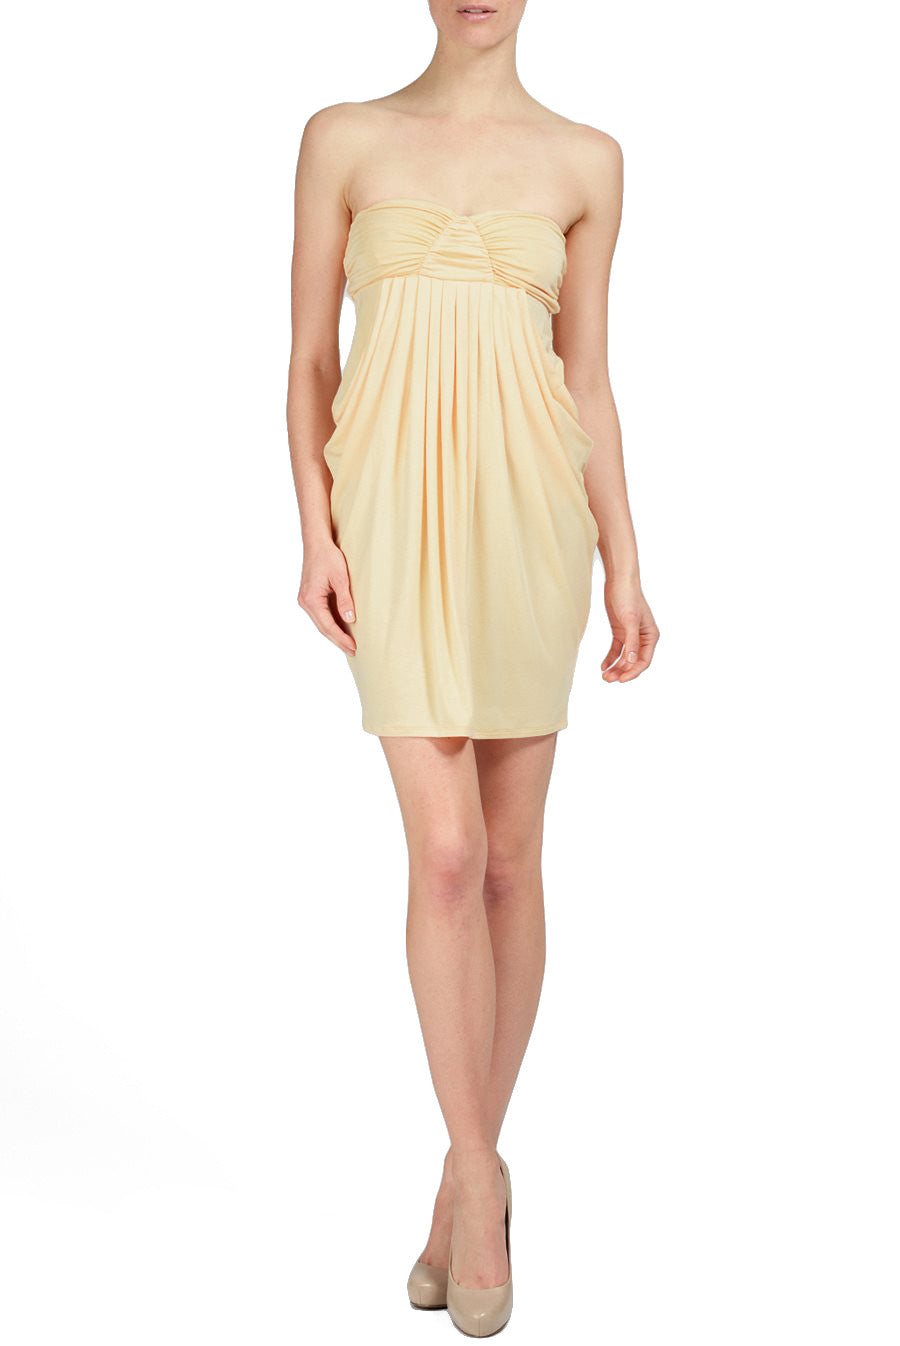 FORTUNA DRESS - QUINCE